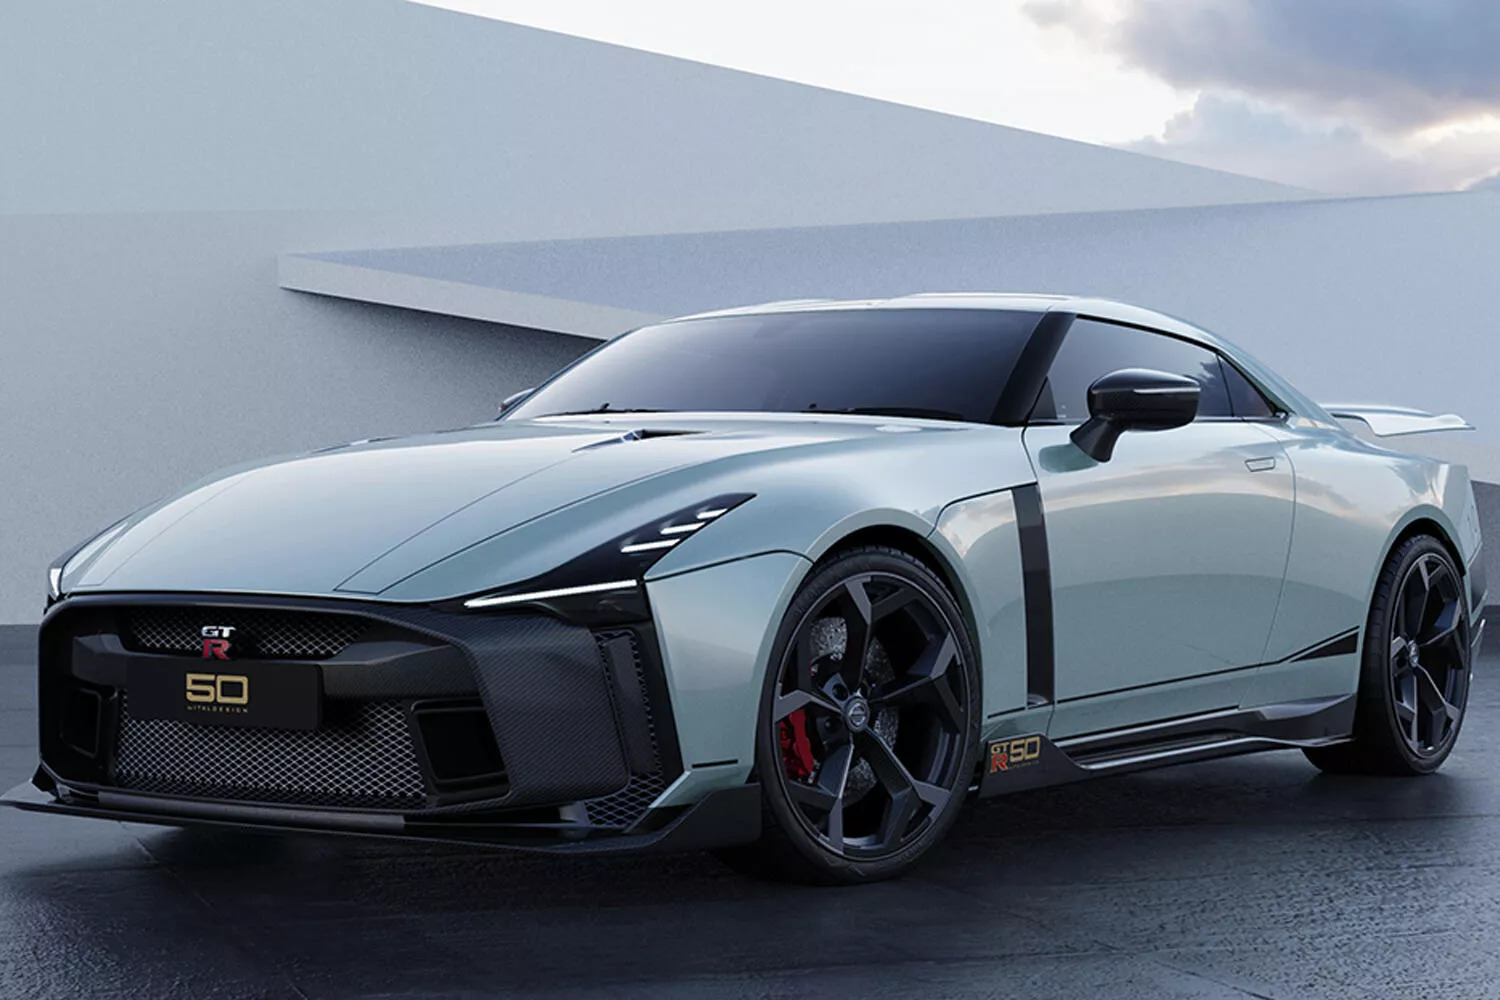 Nissan GT-R50 cars set for delivery in 2020